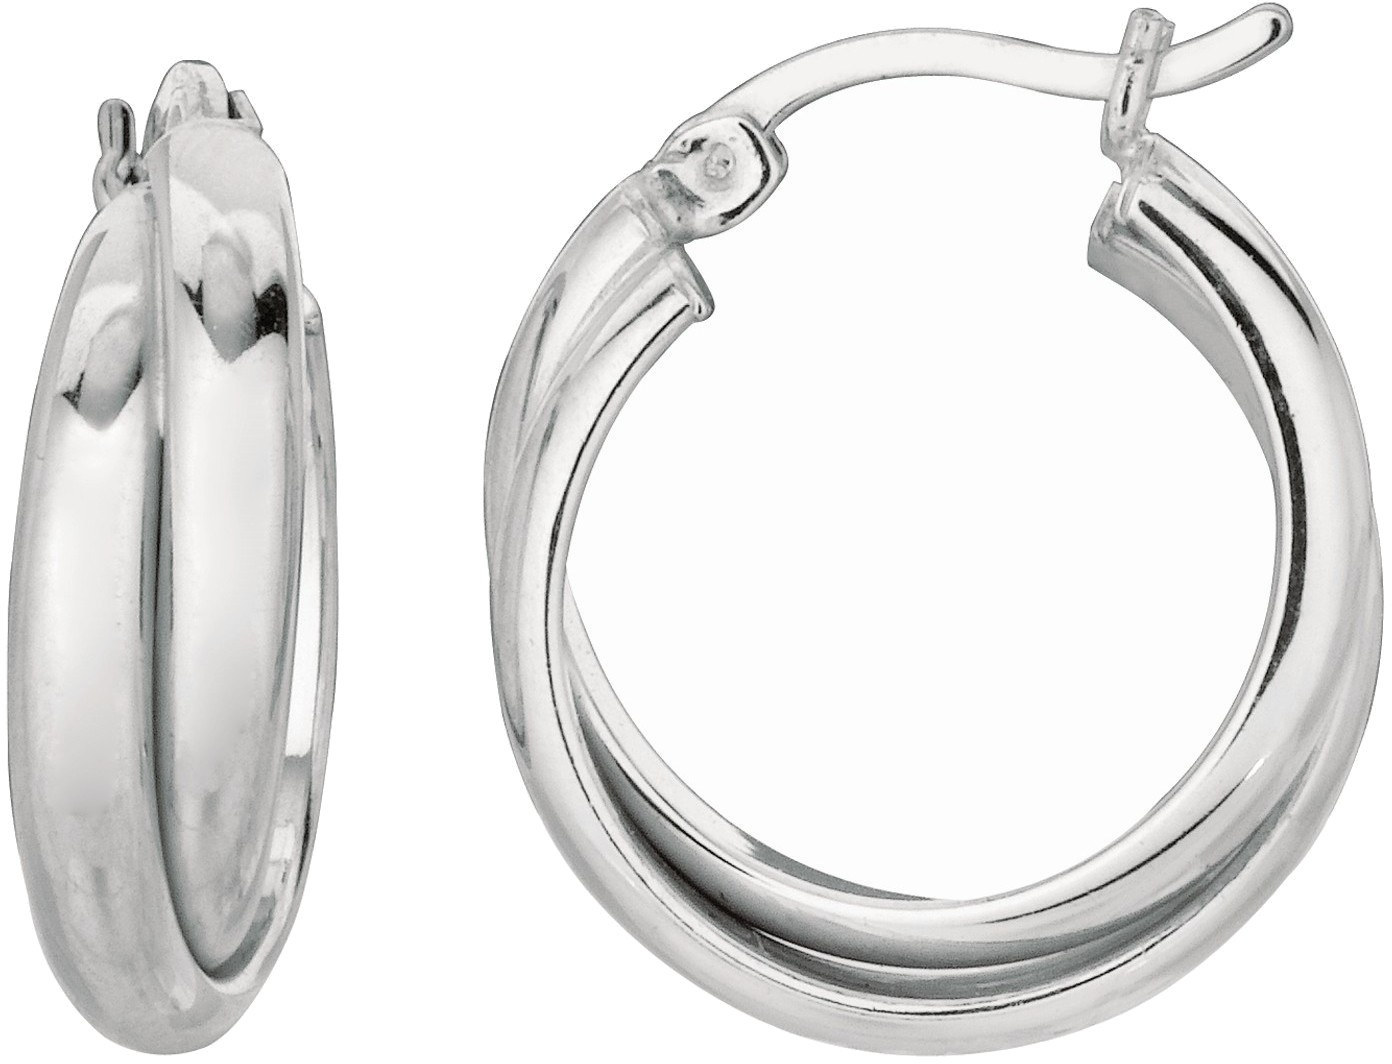 Silver Rhodium Plated Shiny 2 Row Hoop Earrings (BTAGWE473)